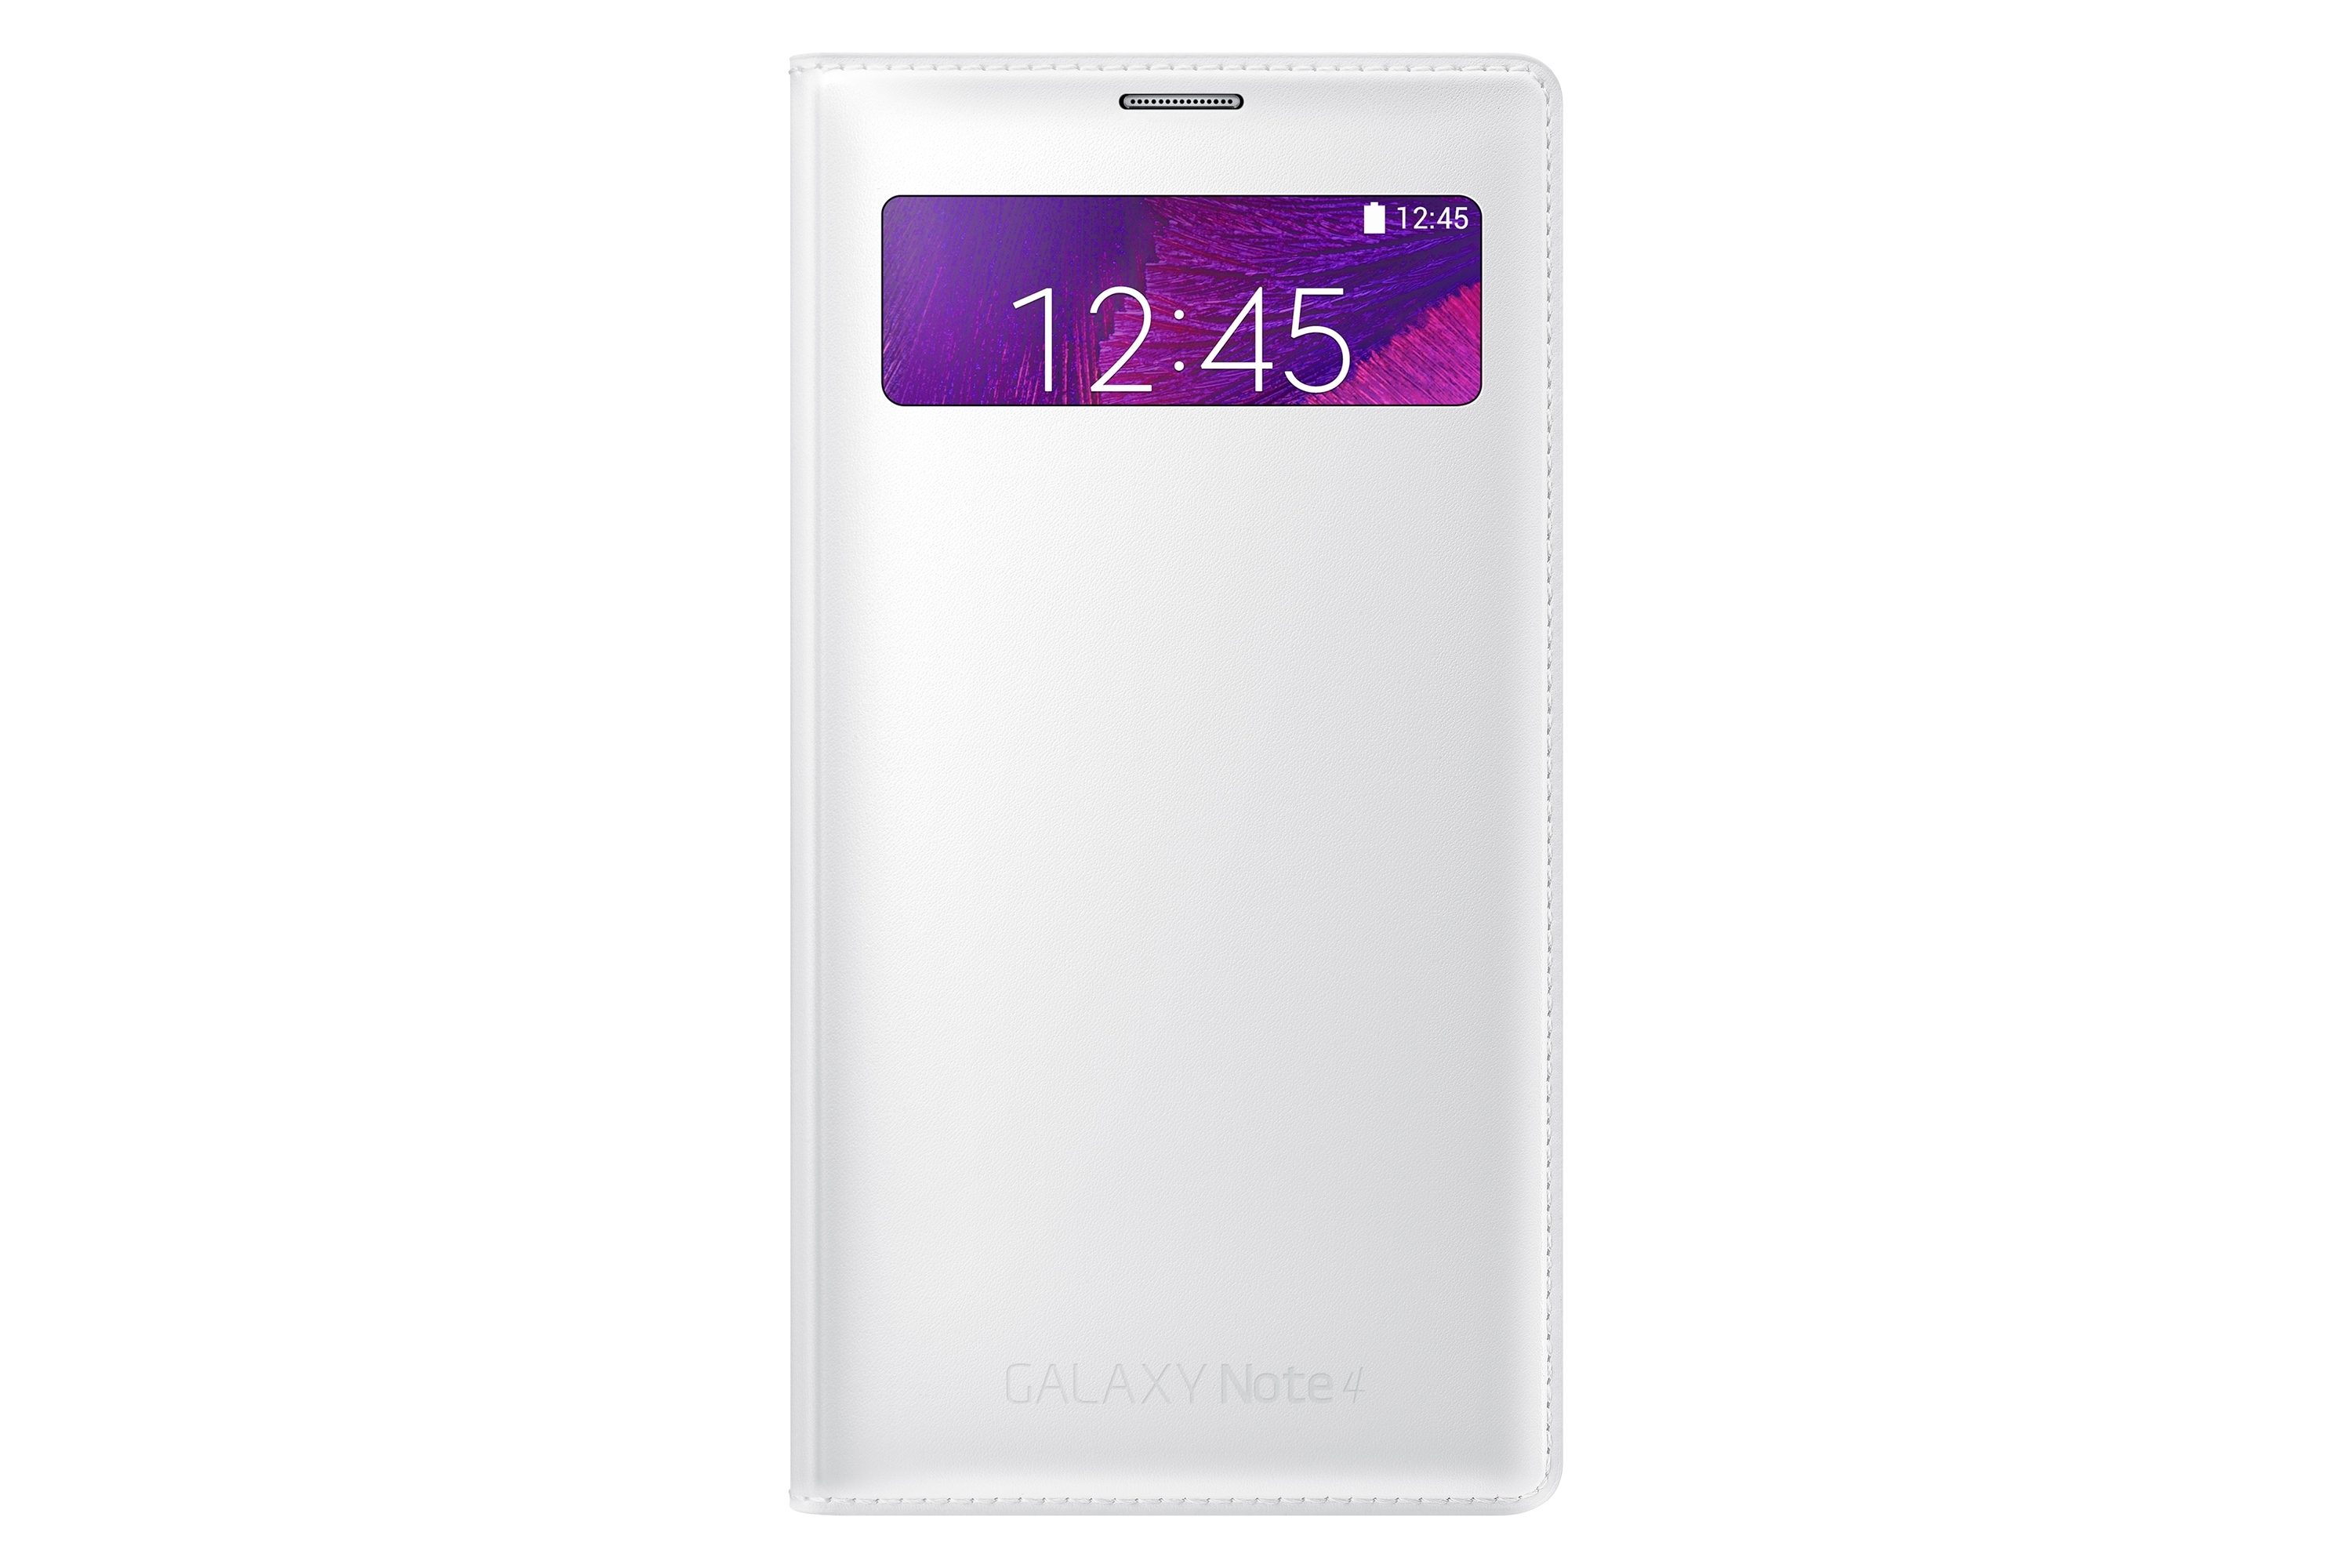 Galaxy Note 4 S aknaga wallet